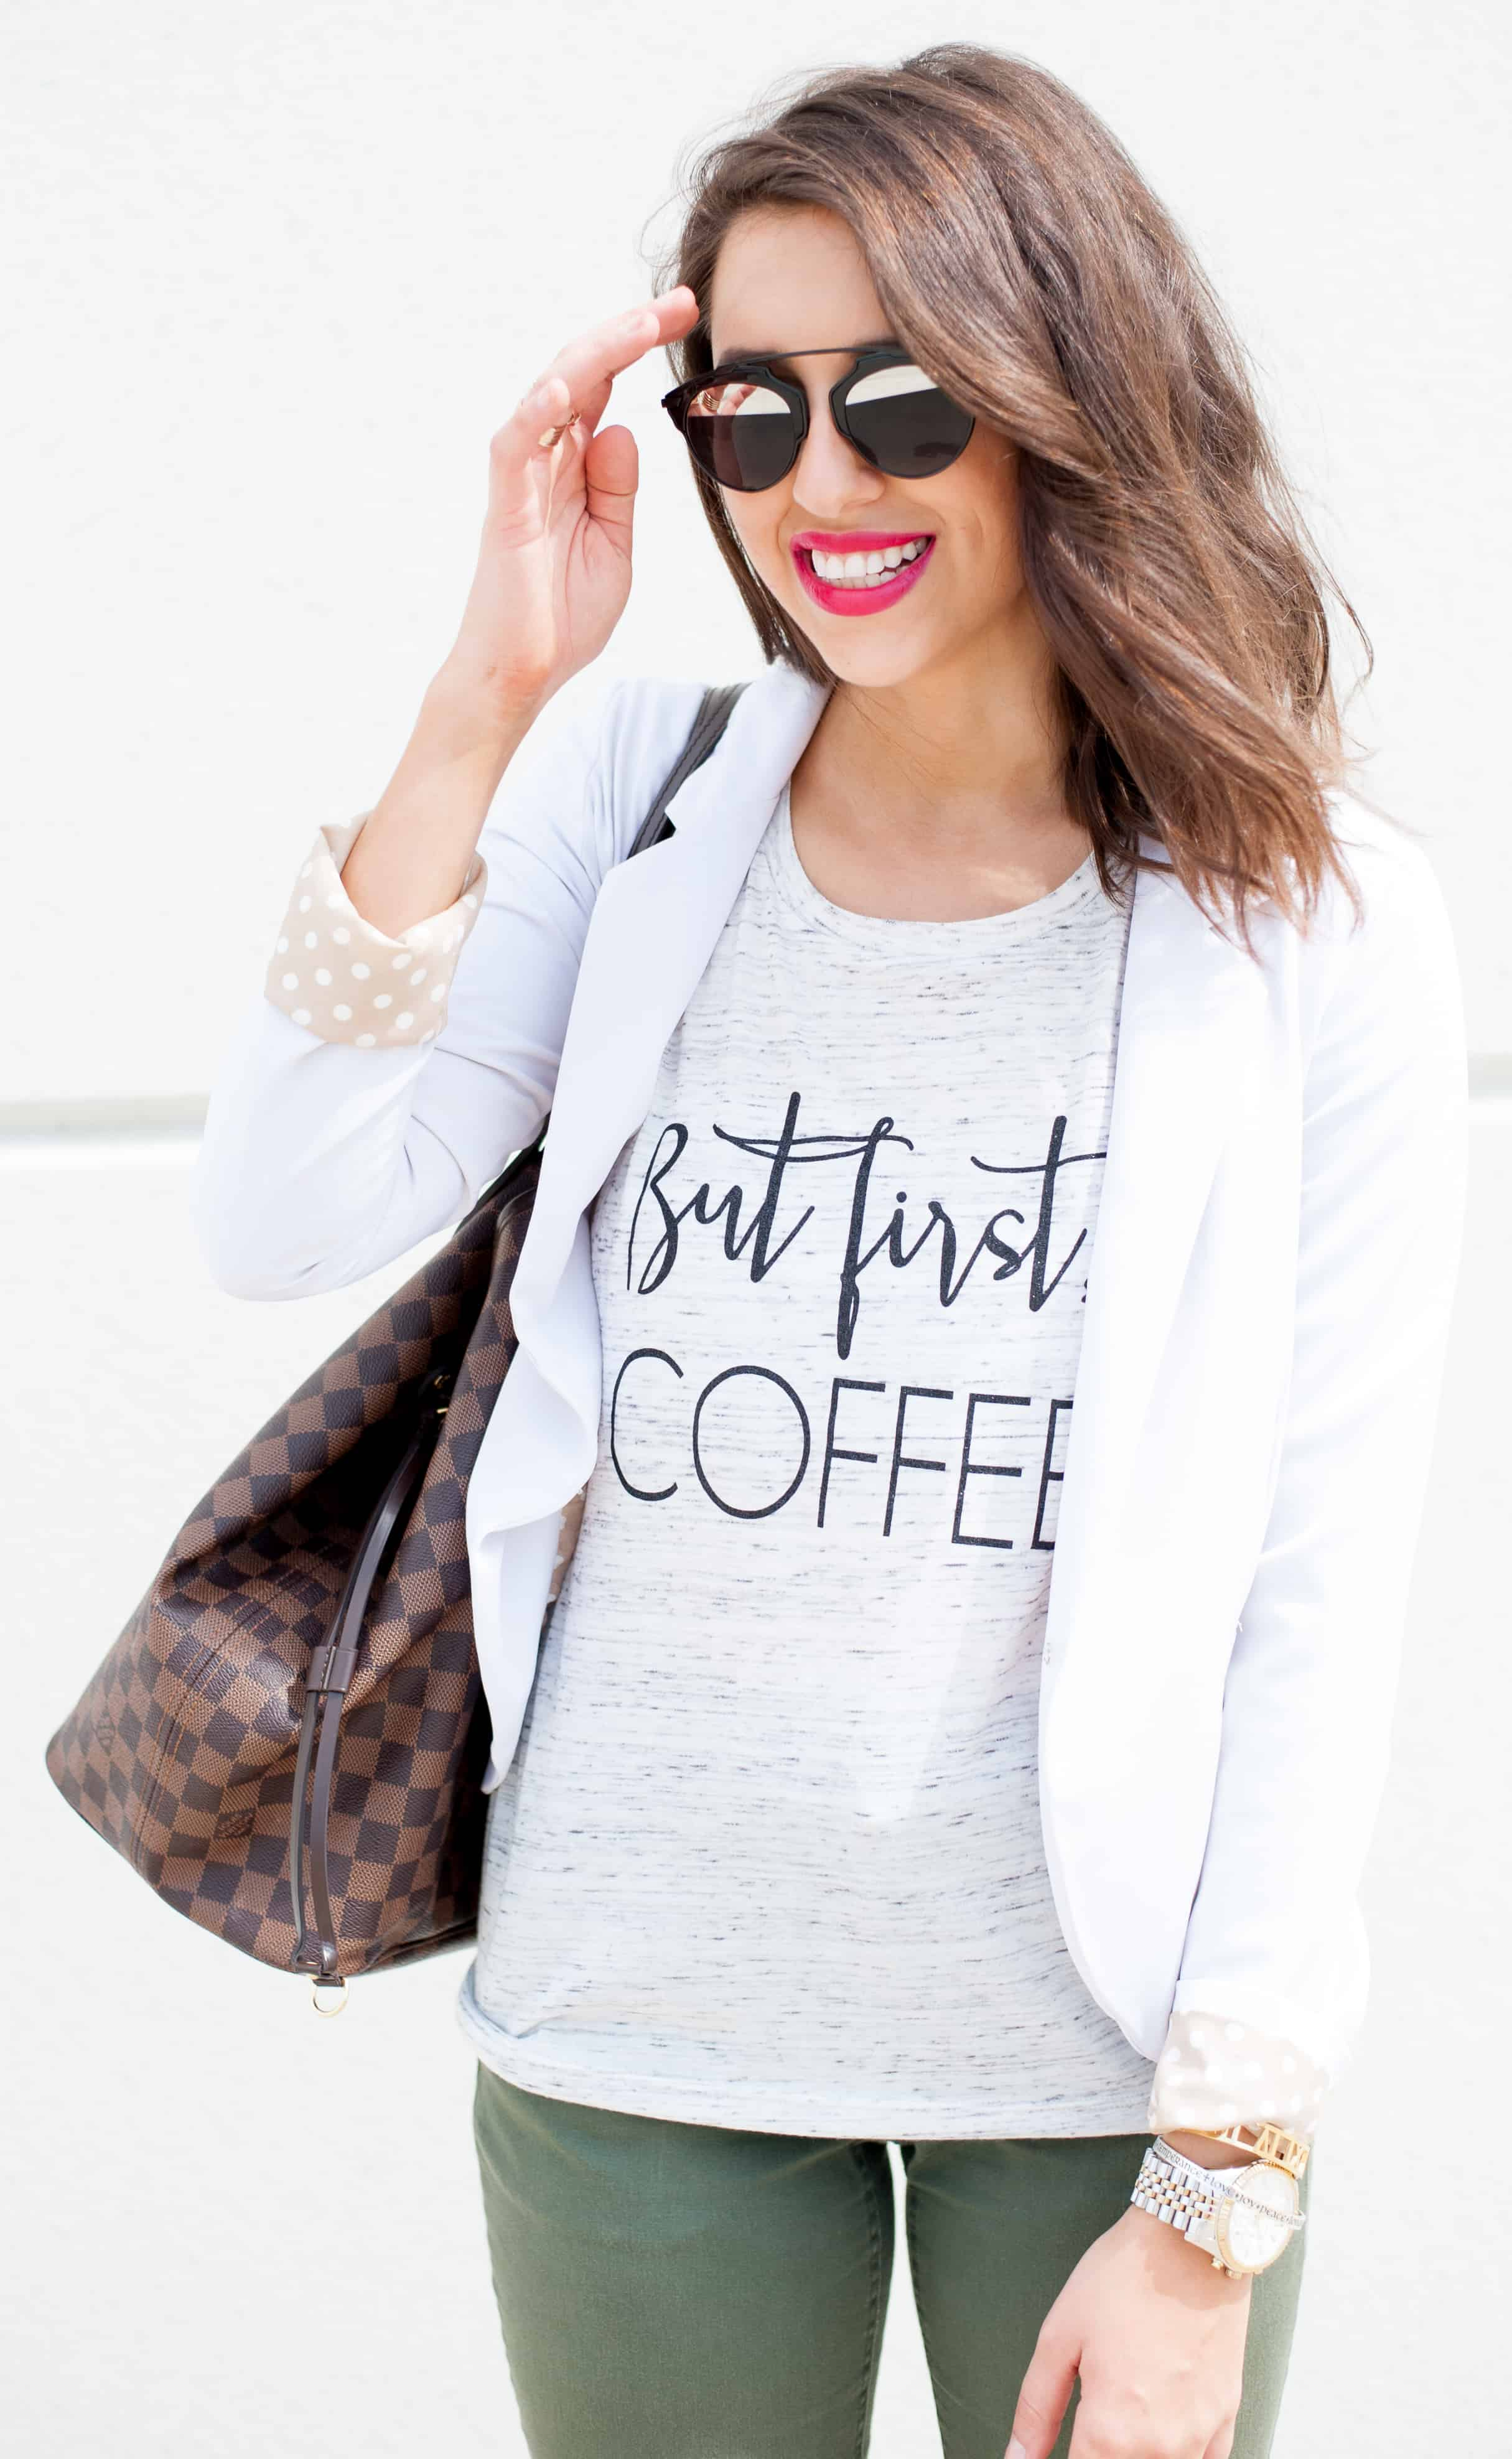 Dress Up Buttercup // A Houston-based fashion and inspiration blog developed to daily inspire your own personal style by Dede Raad | How to Dress Up A Tee to The Office